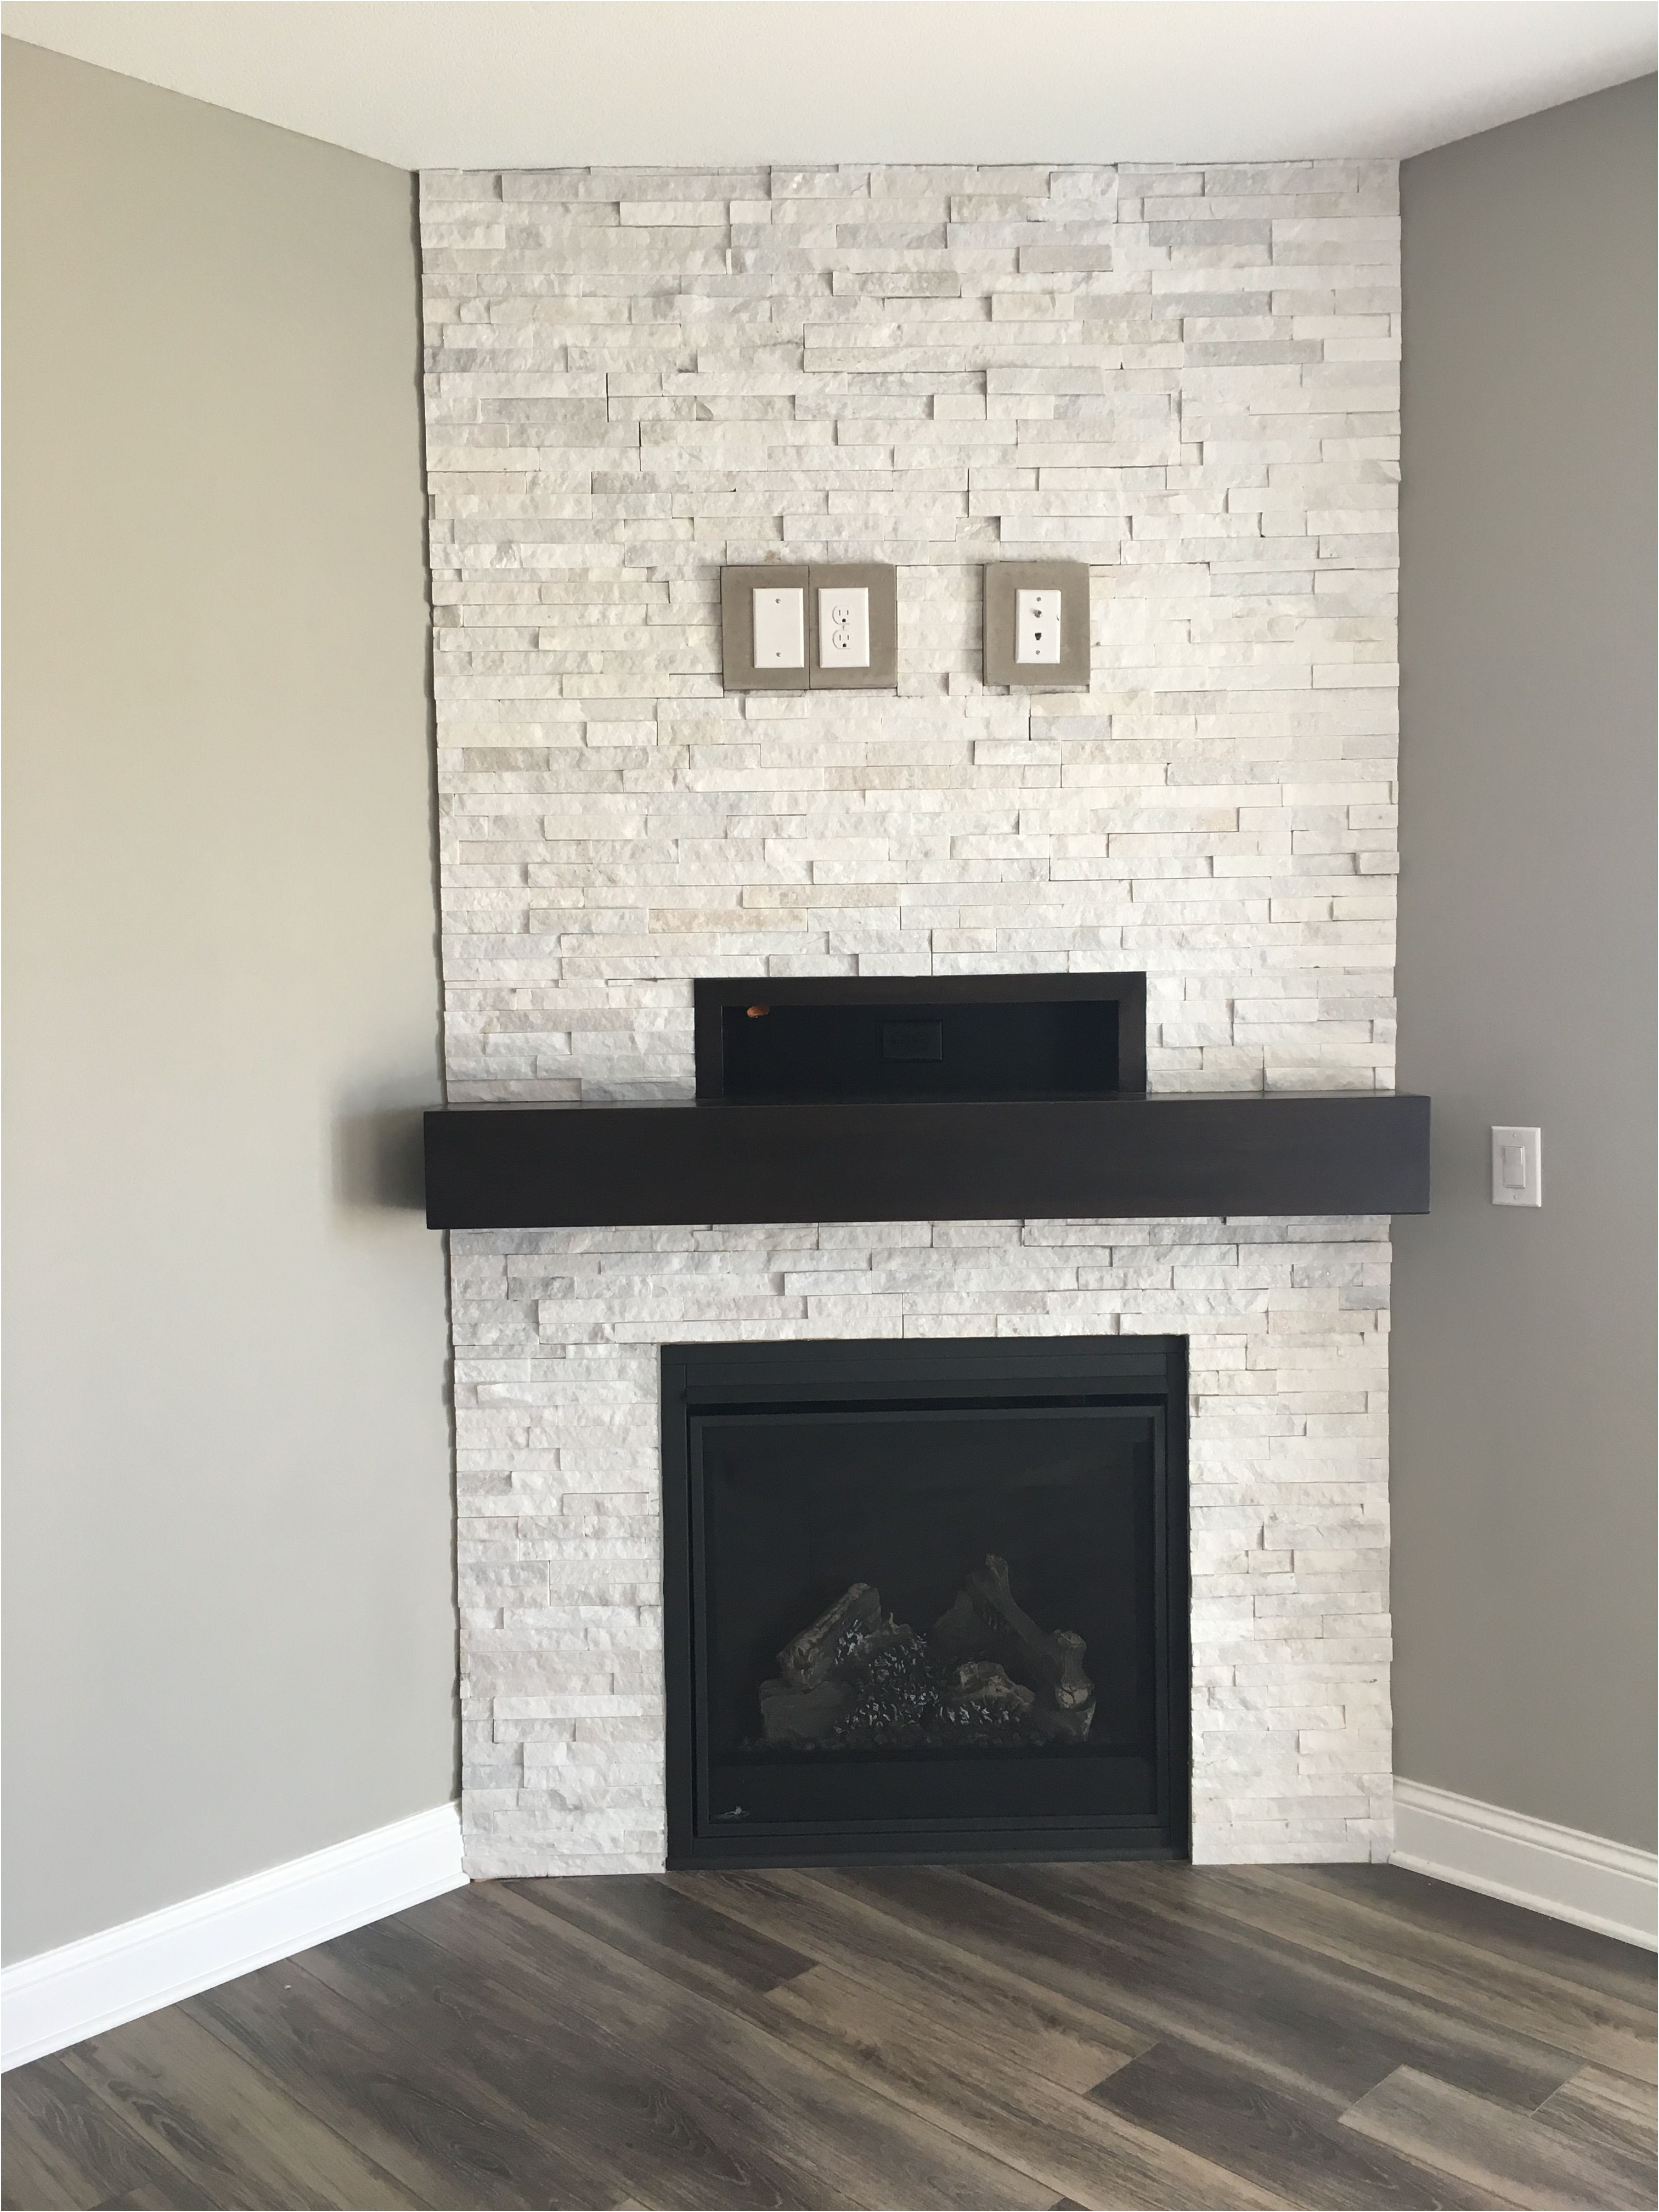 Fireplace Stacked Stone Ideas Awesome Pin On Fireplace Ideas We Love